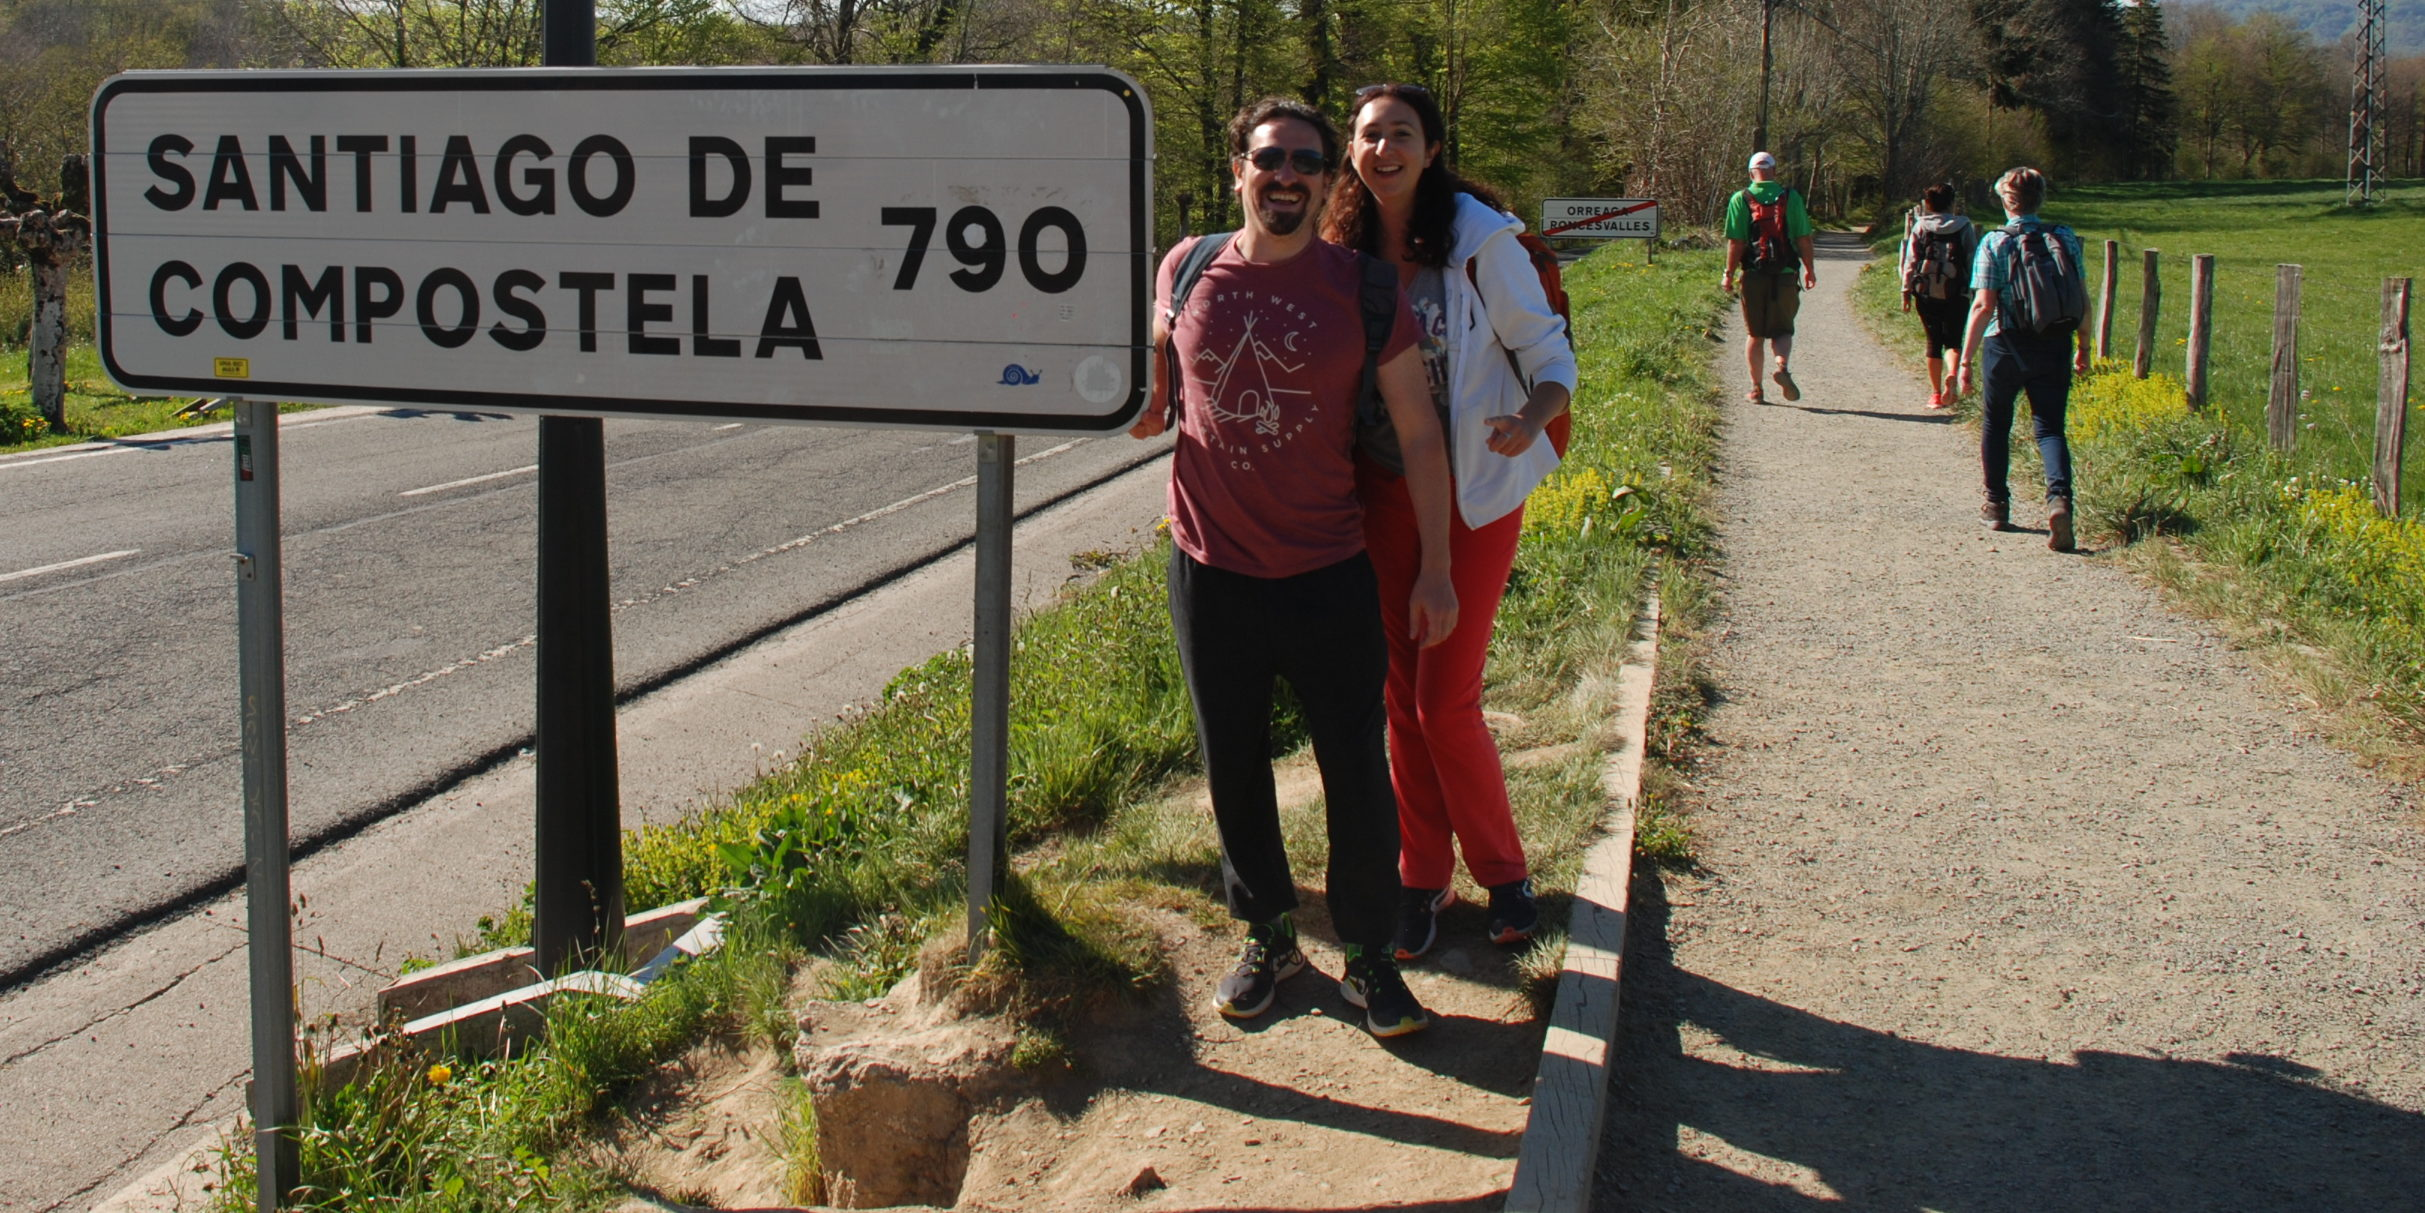 Road sign showing 790 kilometres till we arrive in Santiago de Compostela